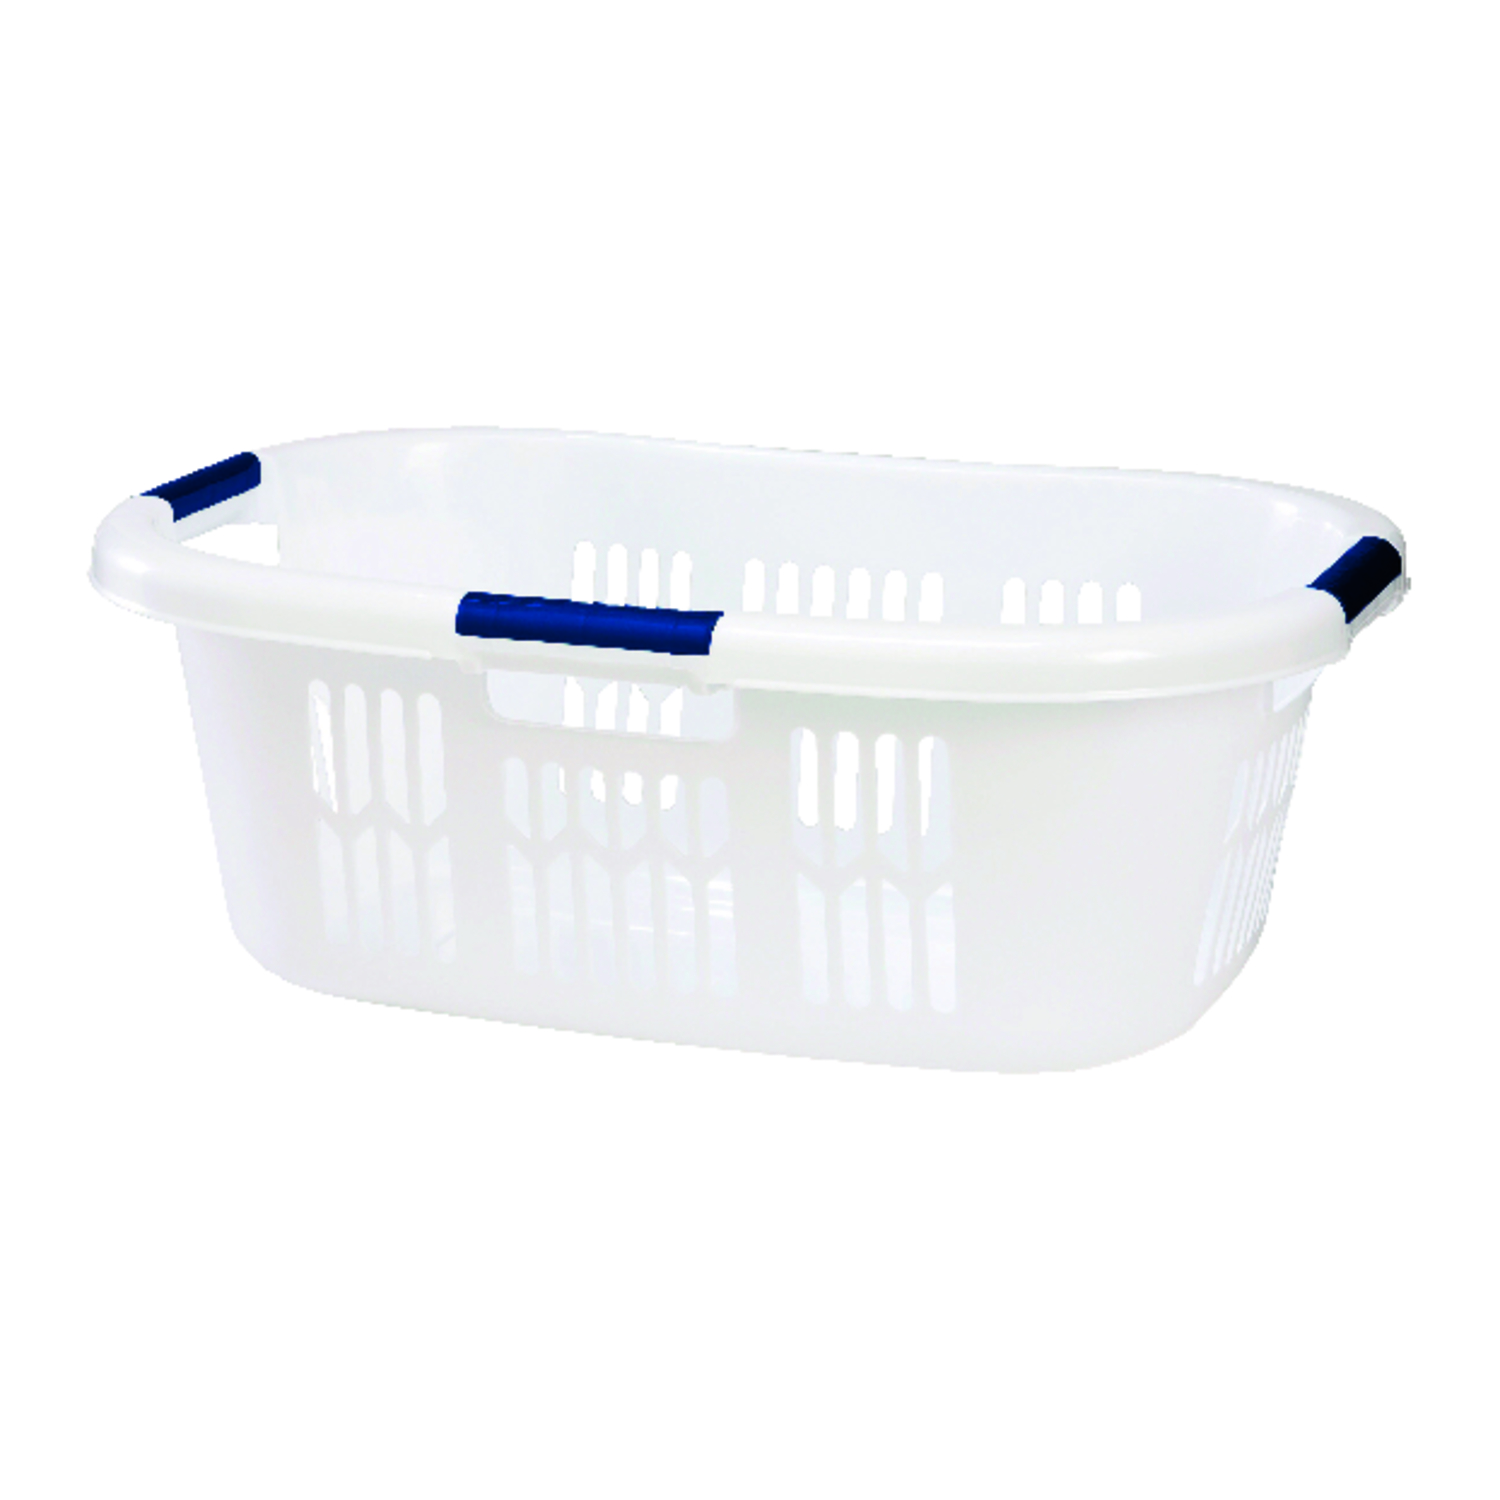 Rubbermaid Laundry Basket 25 3/4 In. X 17 In. X 9